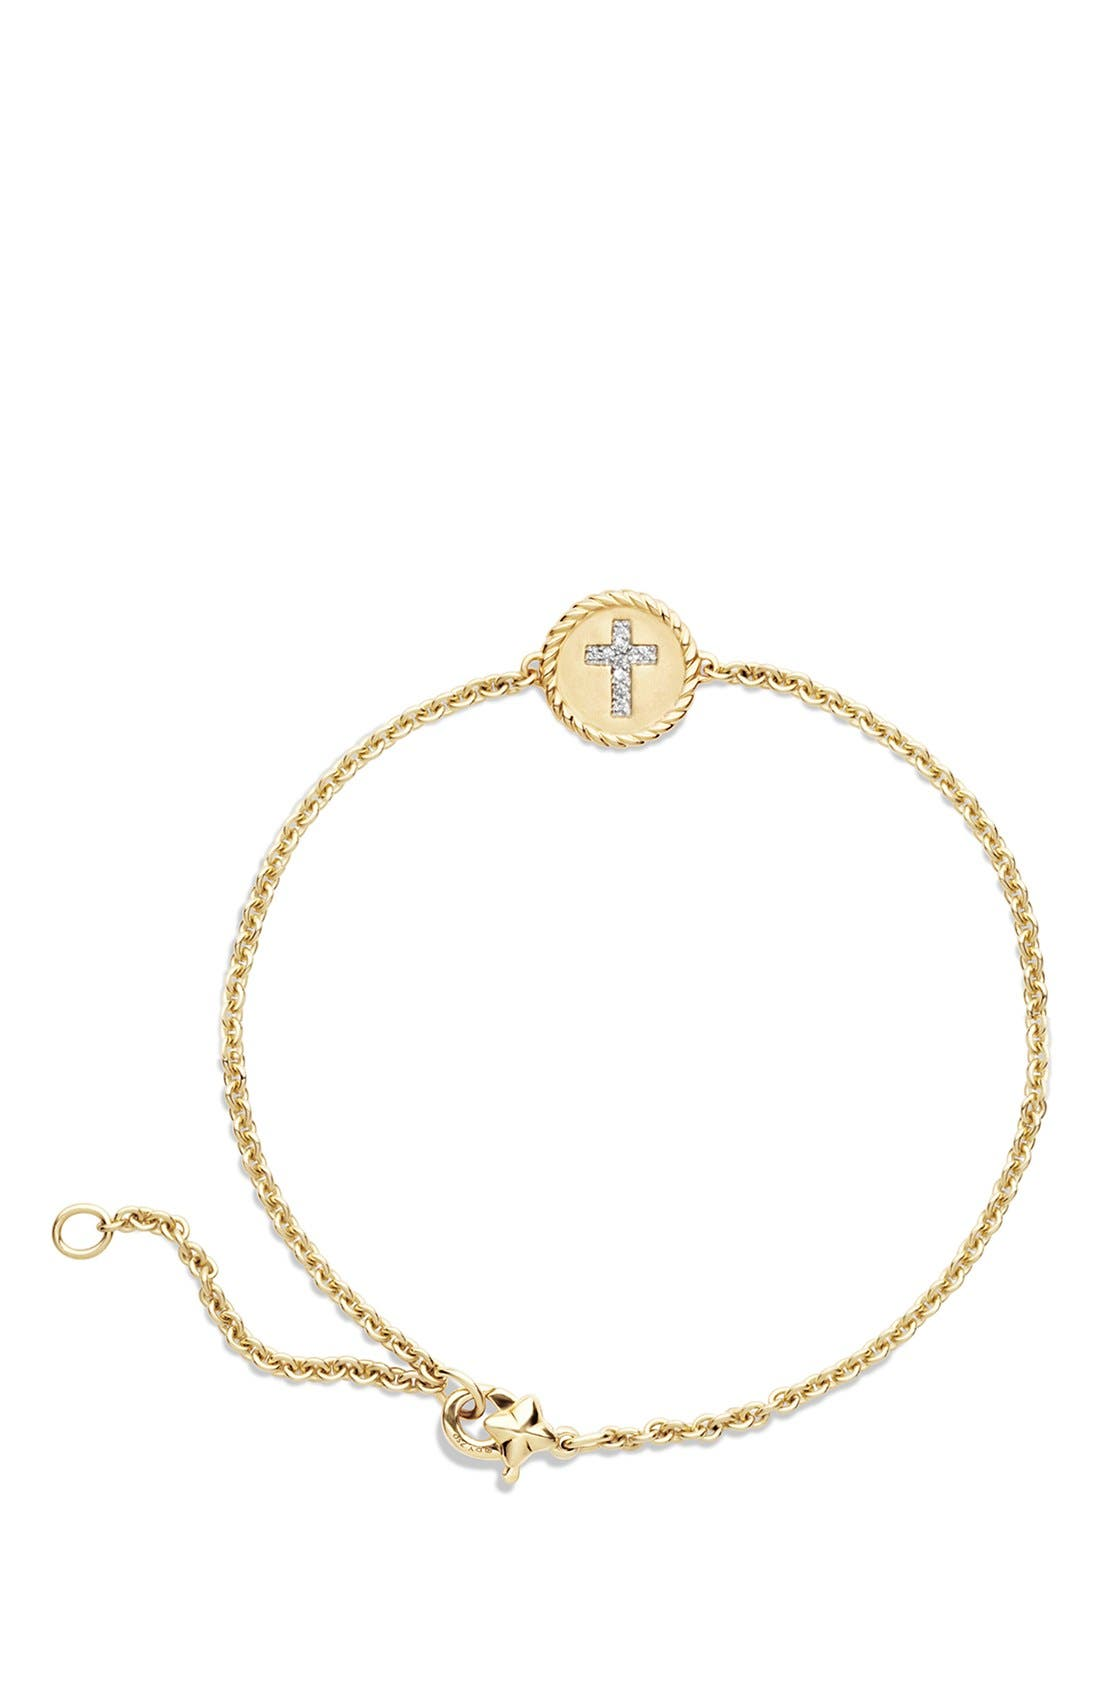 'Cable Collectibles' Cable Pavé Charm Bracelet with Diamonds in Gold,                             Alternate thumbnail 2, color,                             710